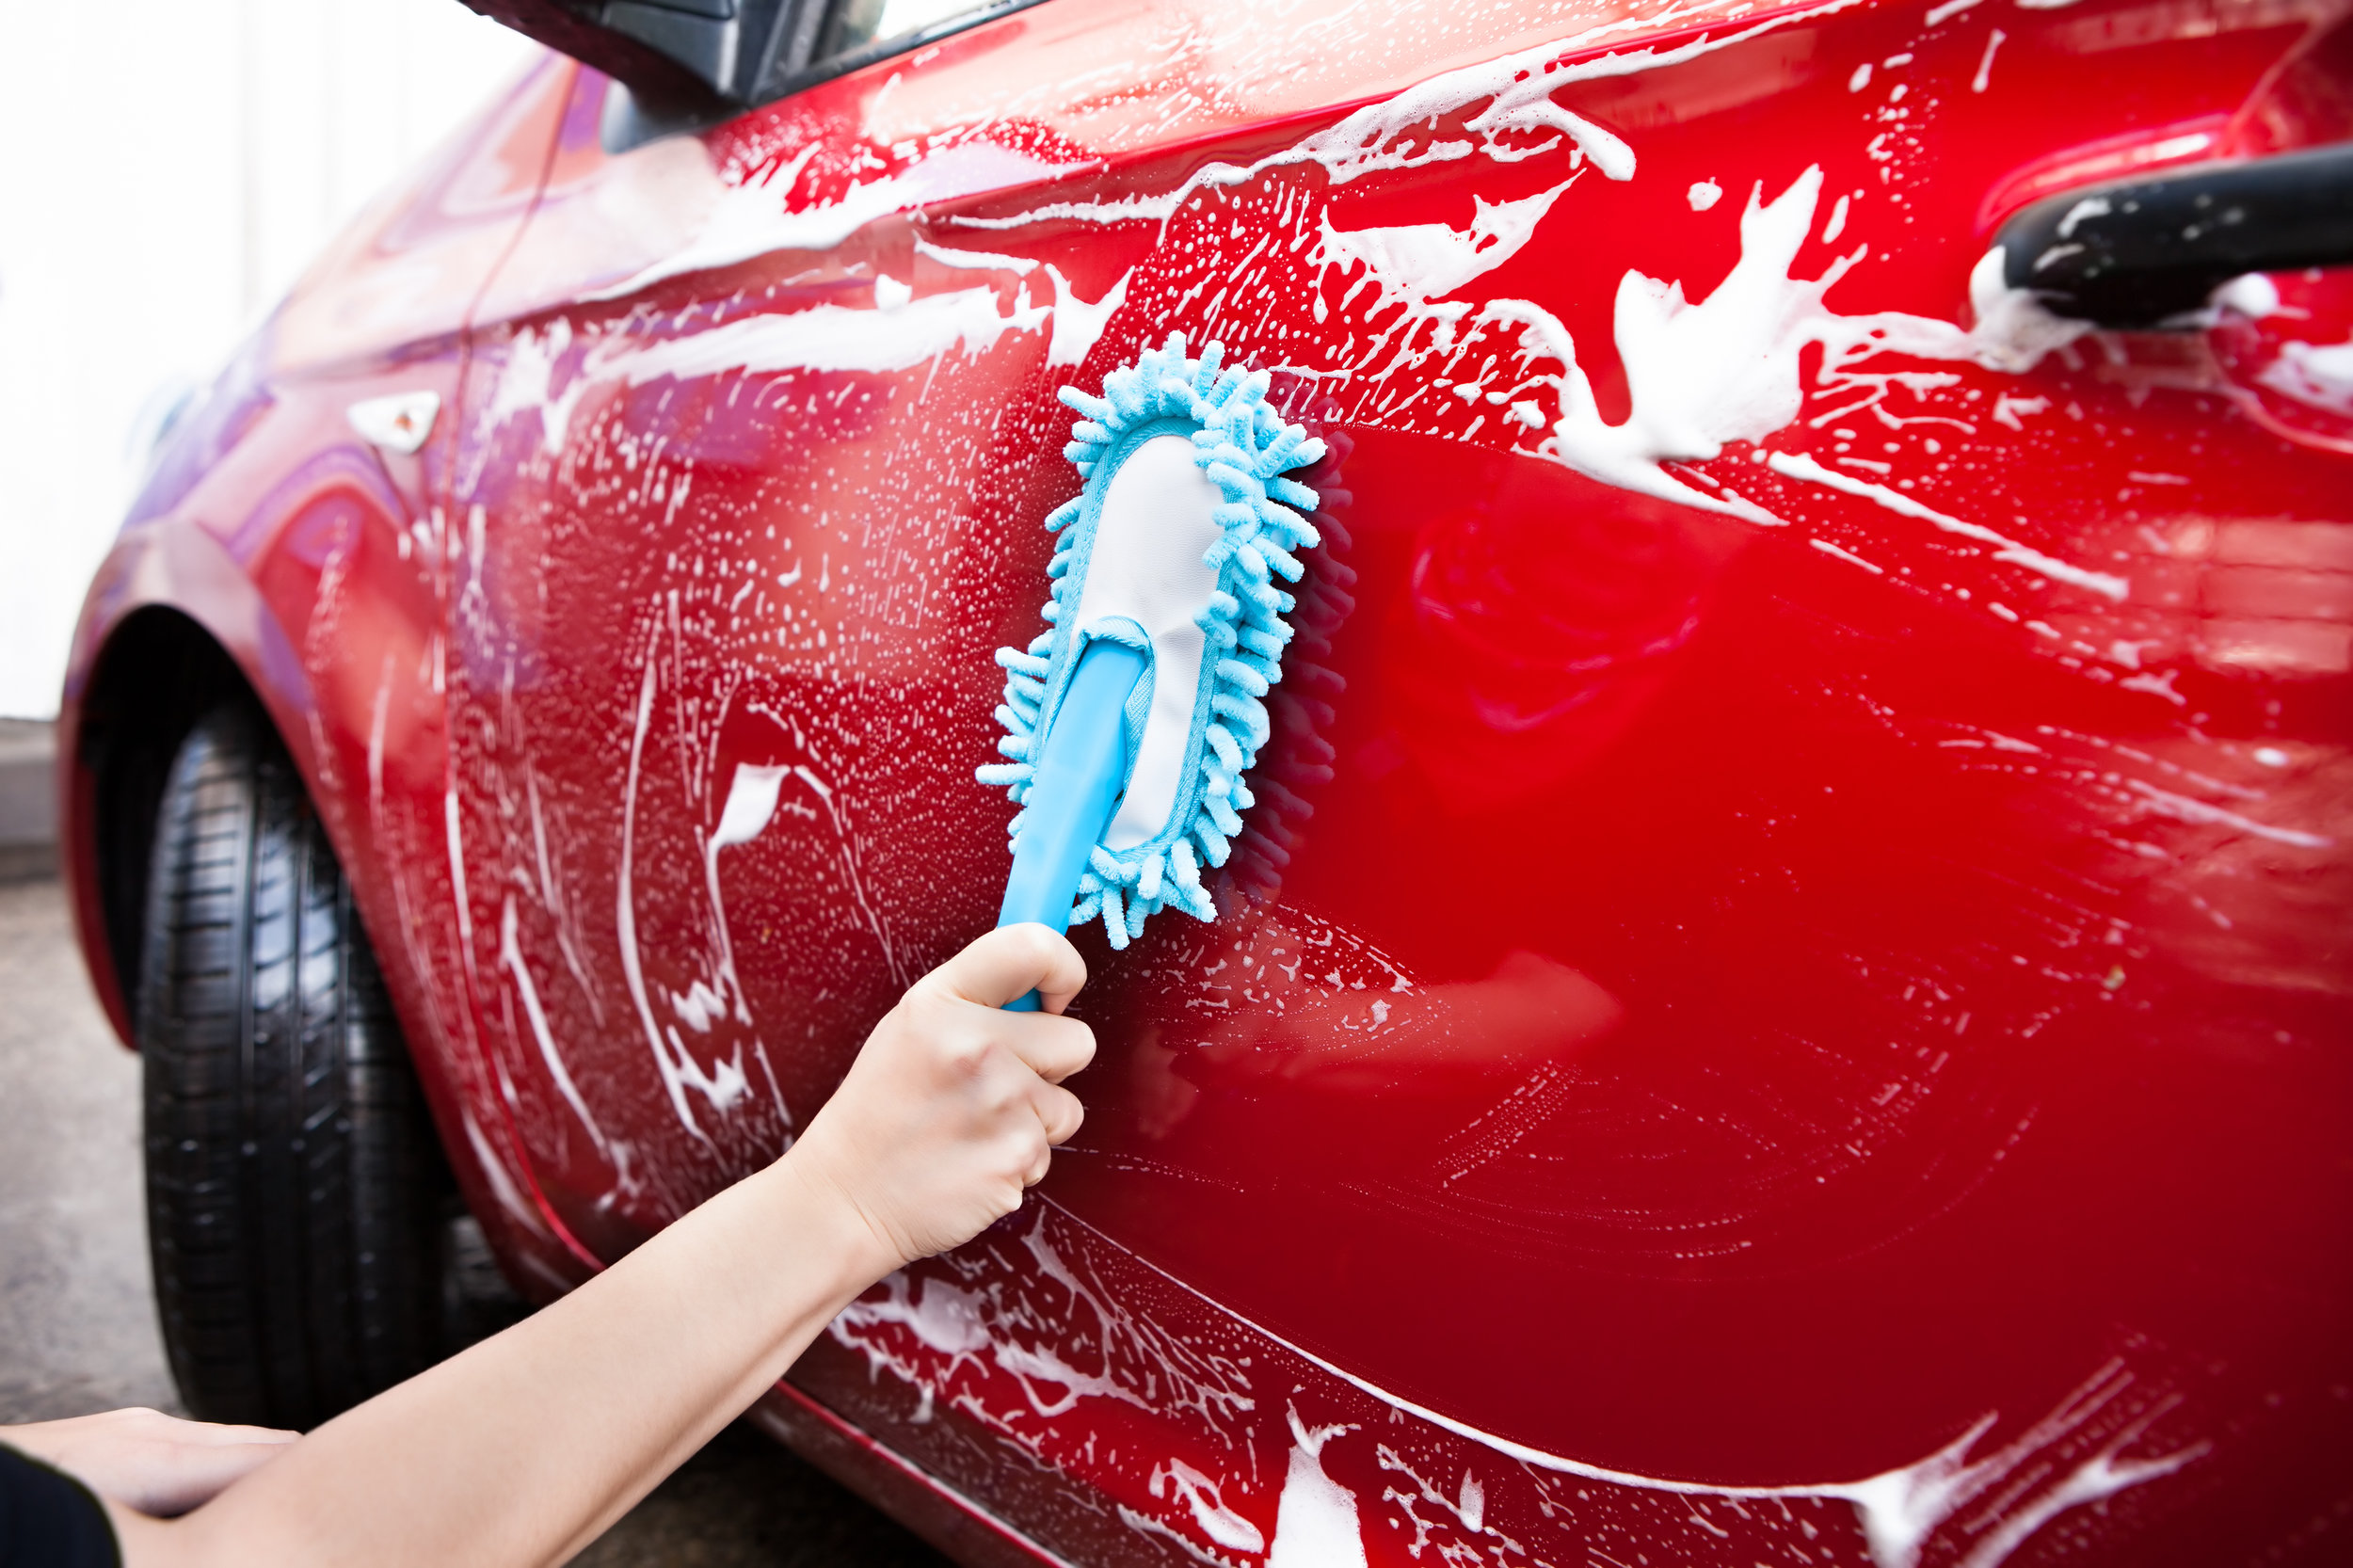 A hand washing a car with a brush